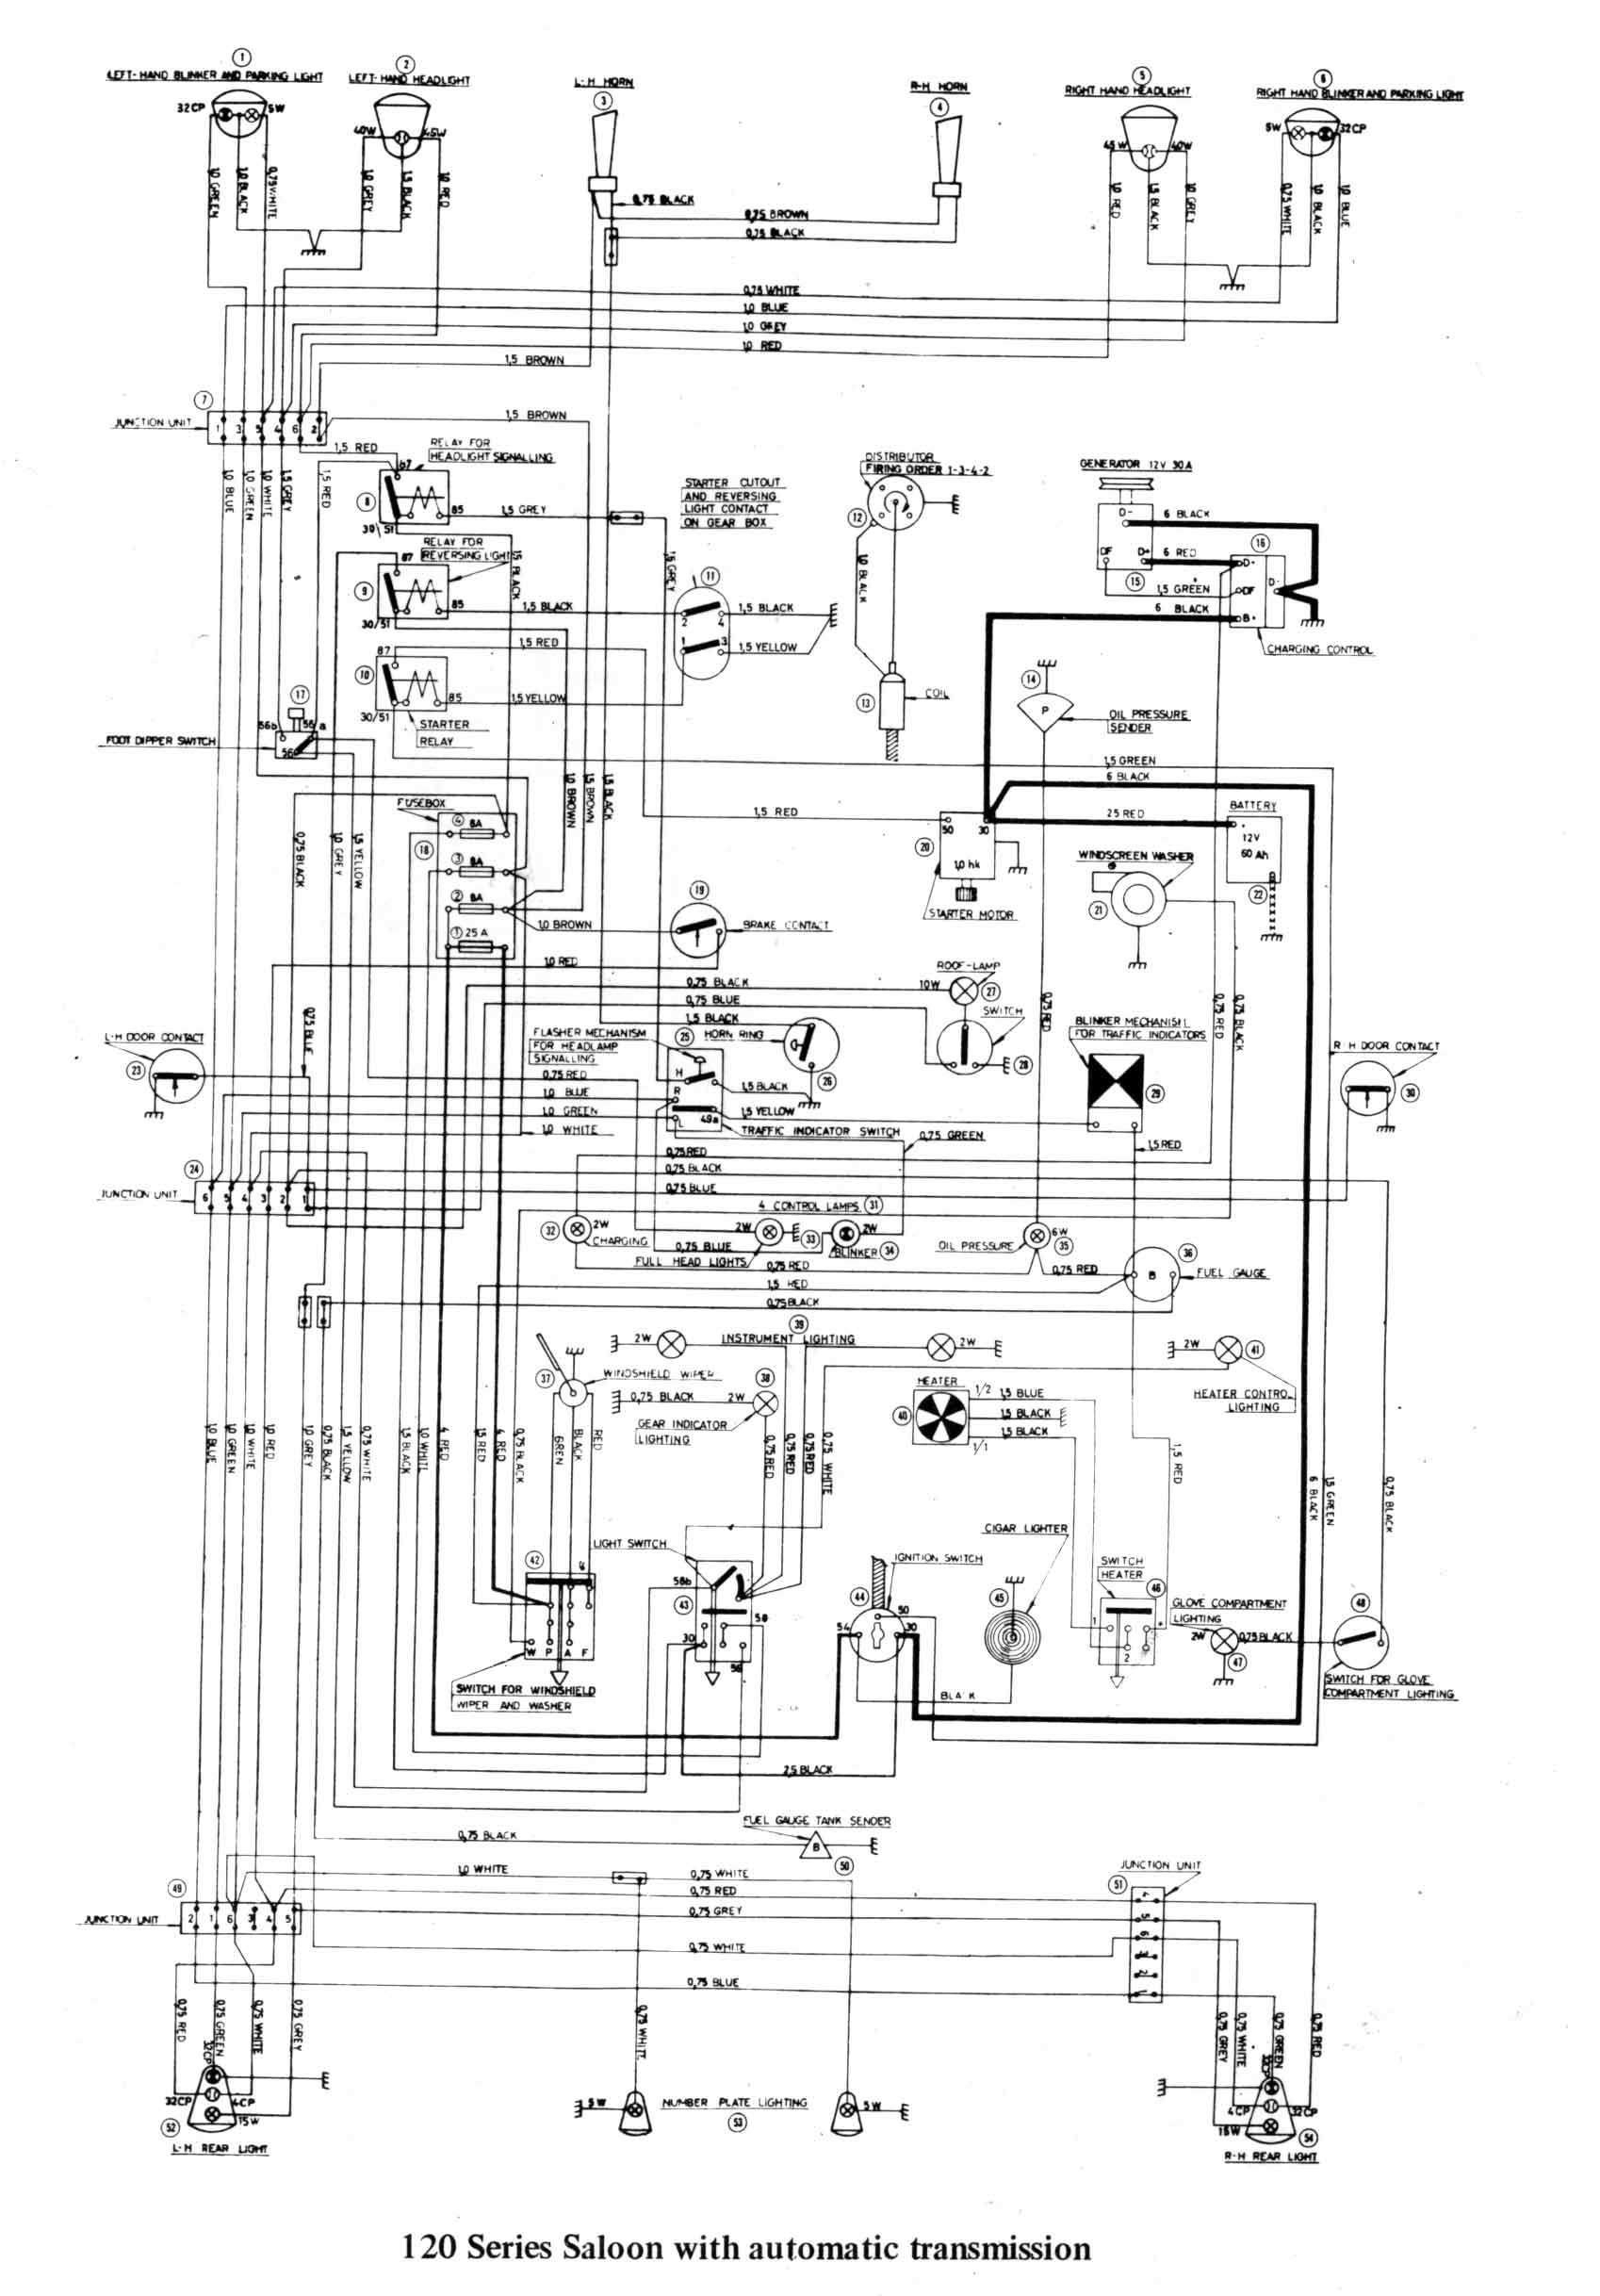 Collection Of Sauer Danfoss Joystick Wiring Diagram Sample